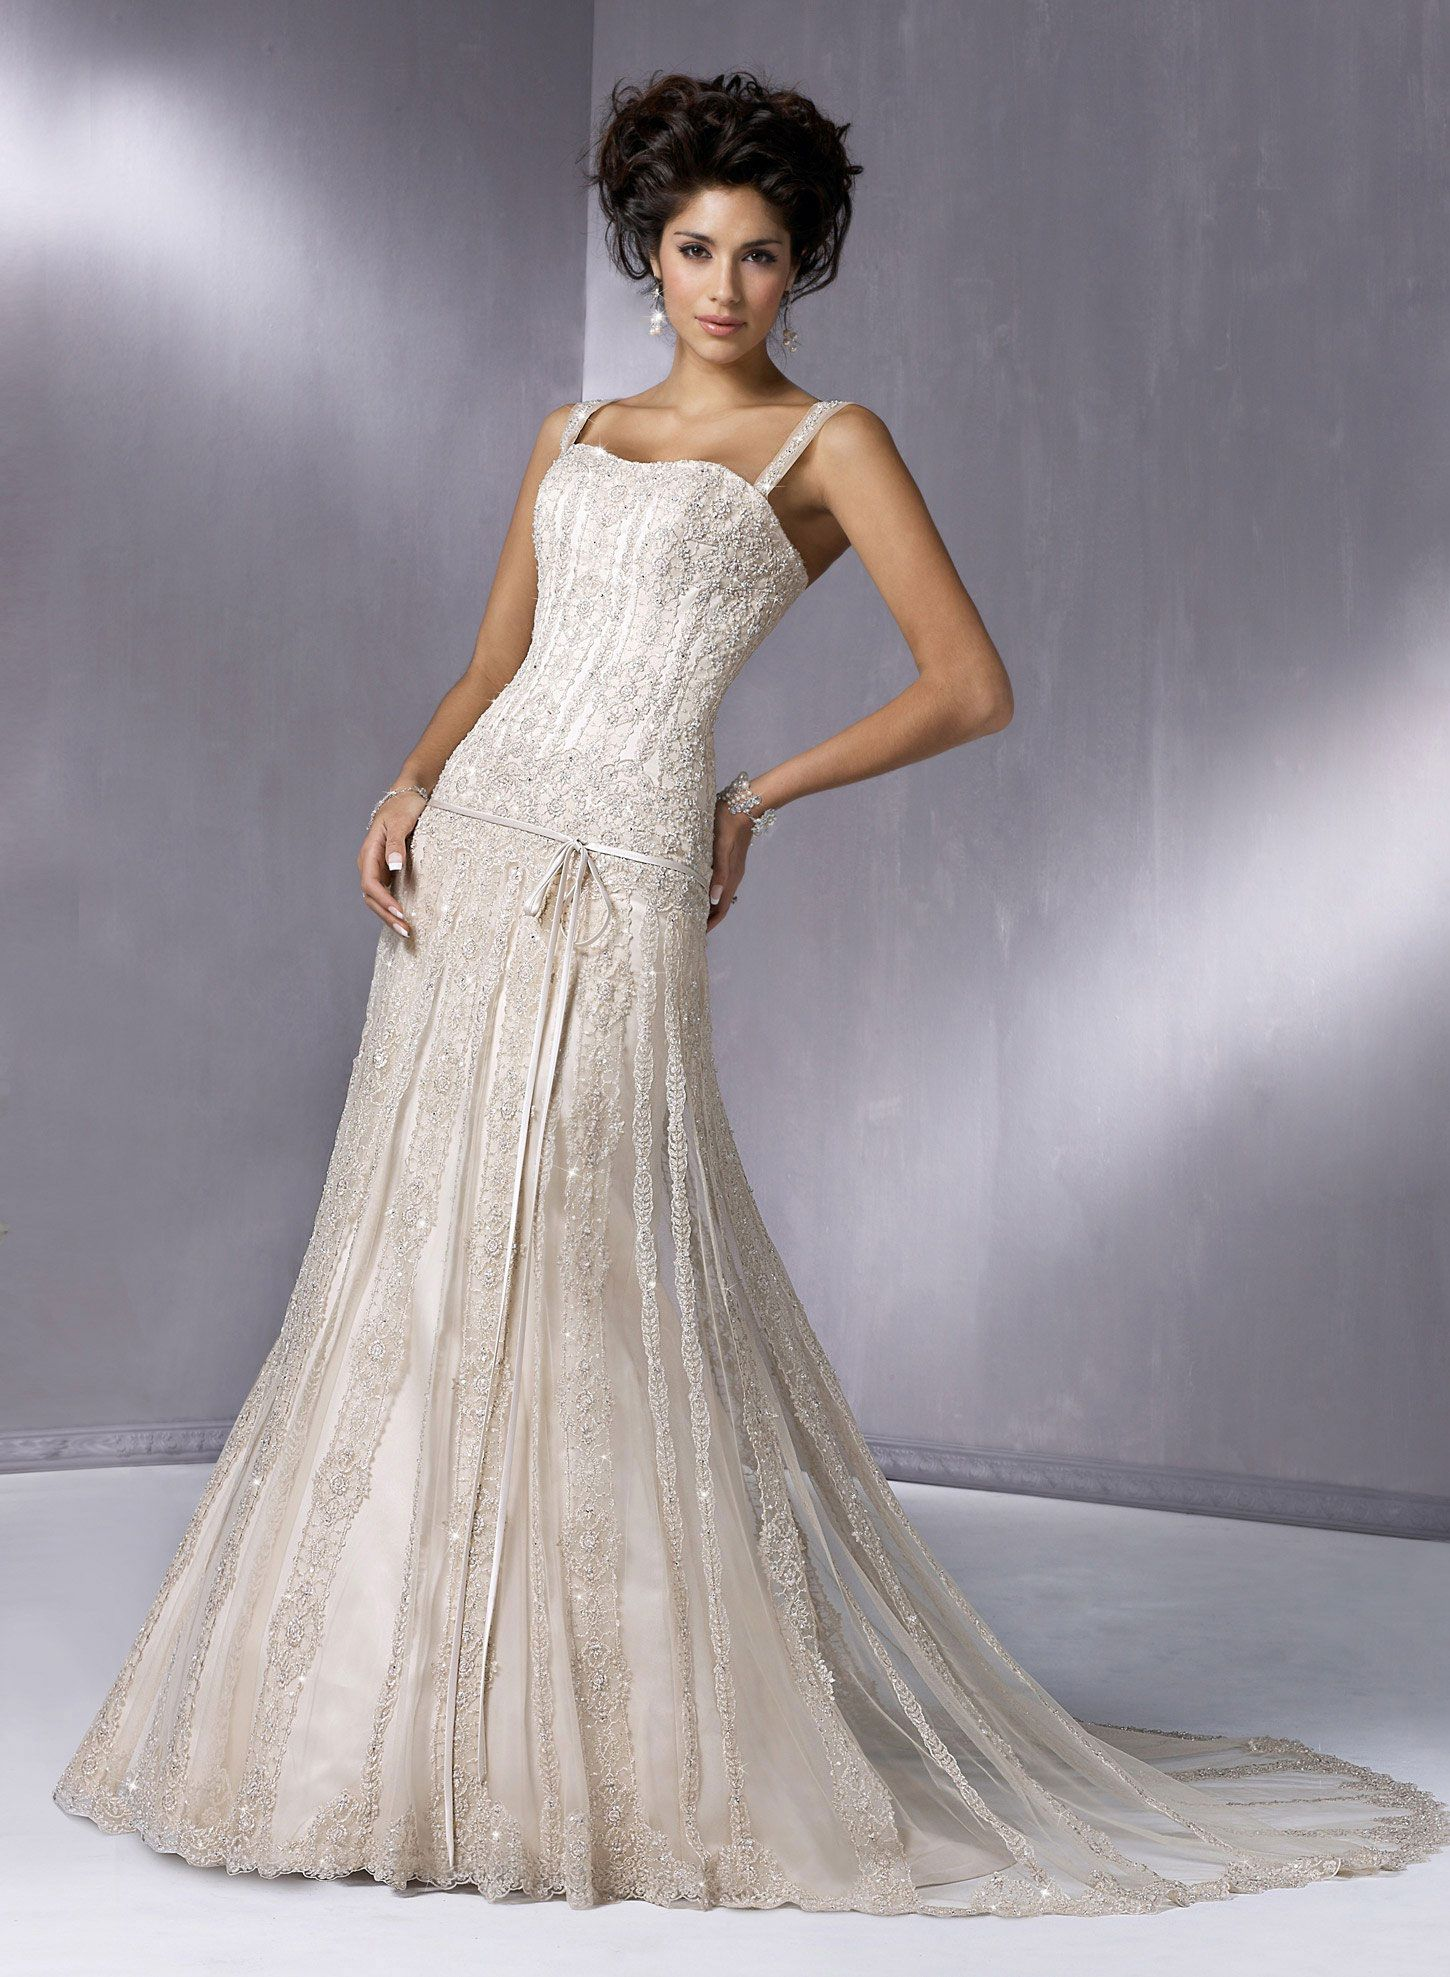 Wedding dresses for broad shoulders  Gatsby Wedding Dress By Maggie Sottero  sara designs  Pinterest